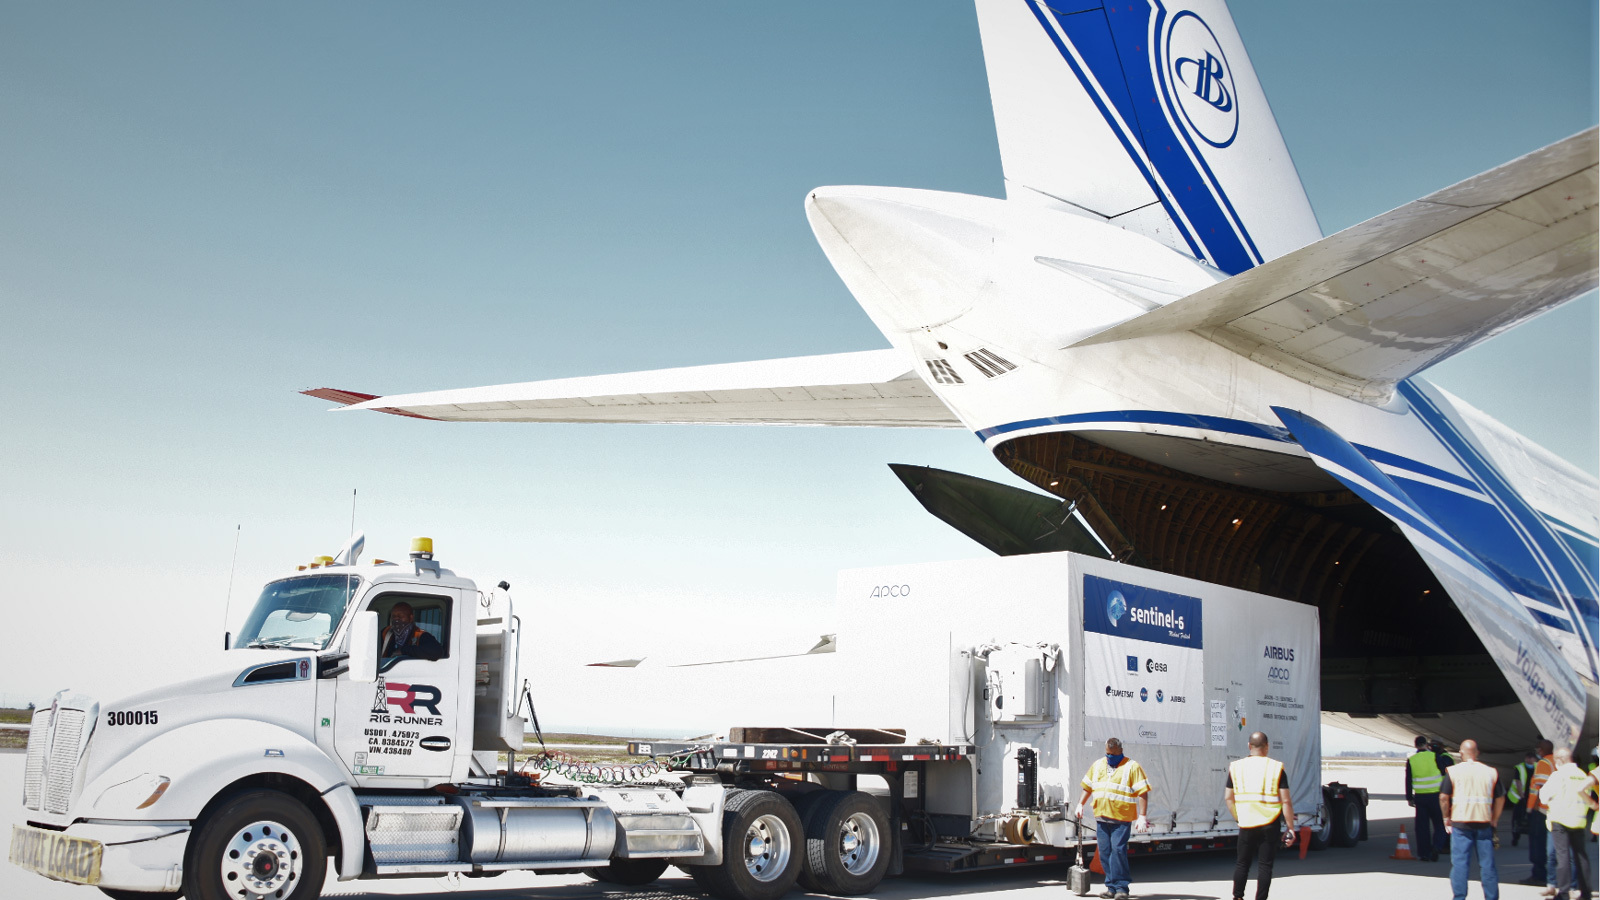 A photo of the spacecraft container being unloaded from a plane.